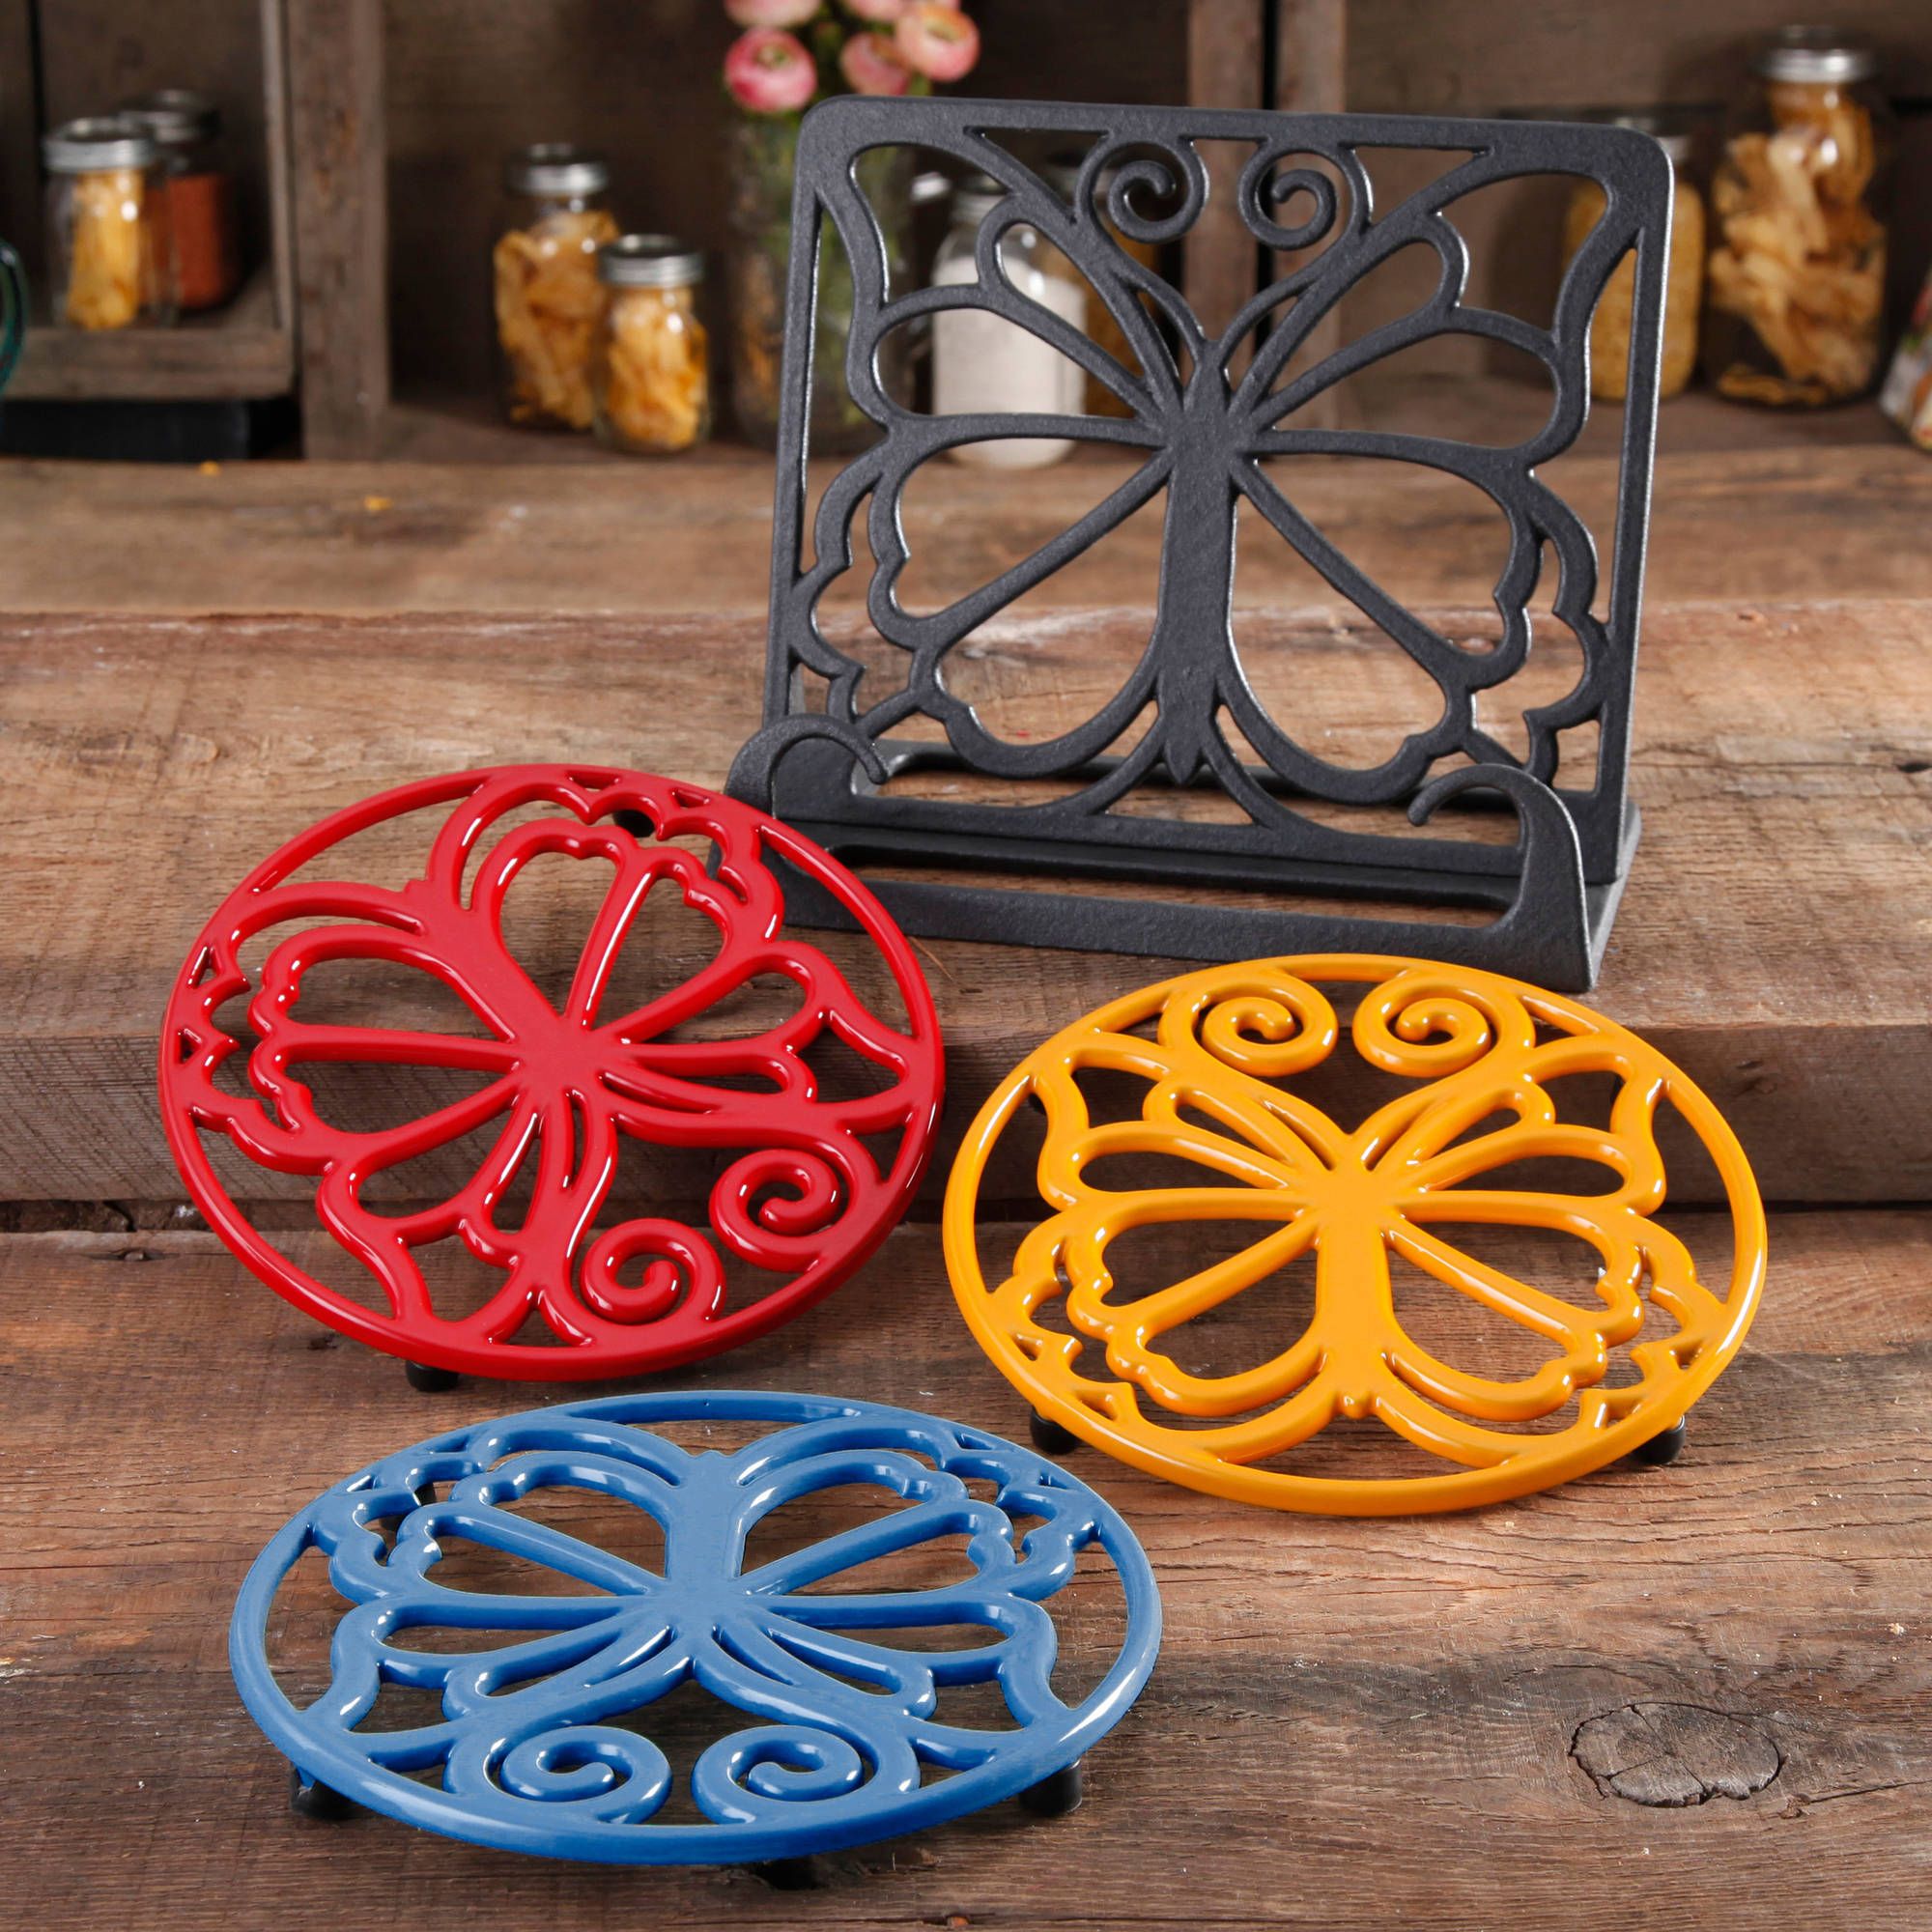 The Pioneer Woman Timeless Beauty 4-Piece Cast Iron Cookbook Holder And Trivet Set